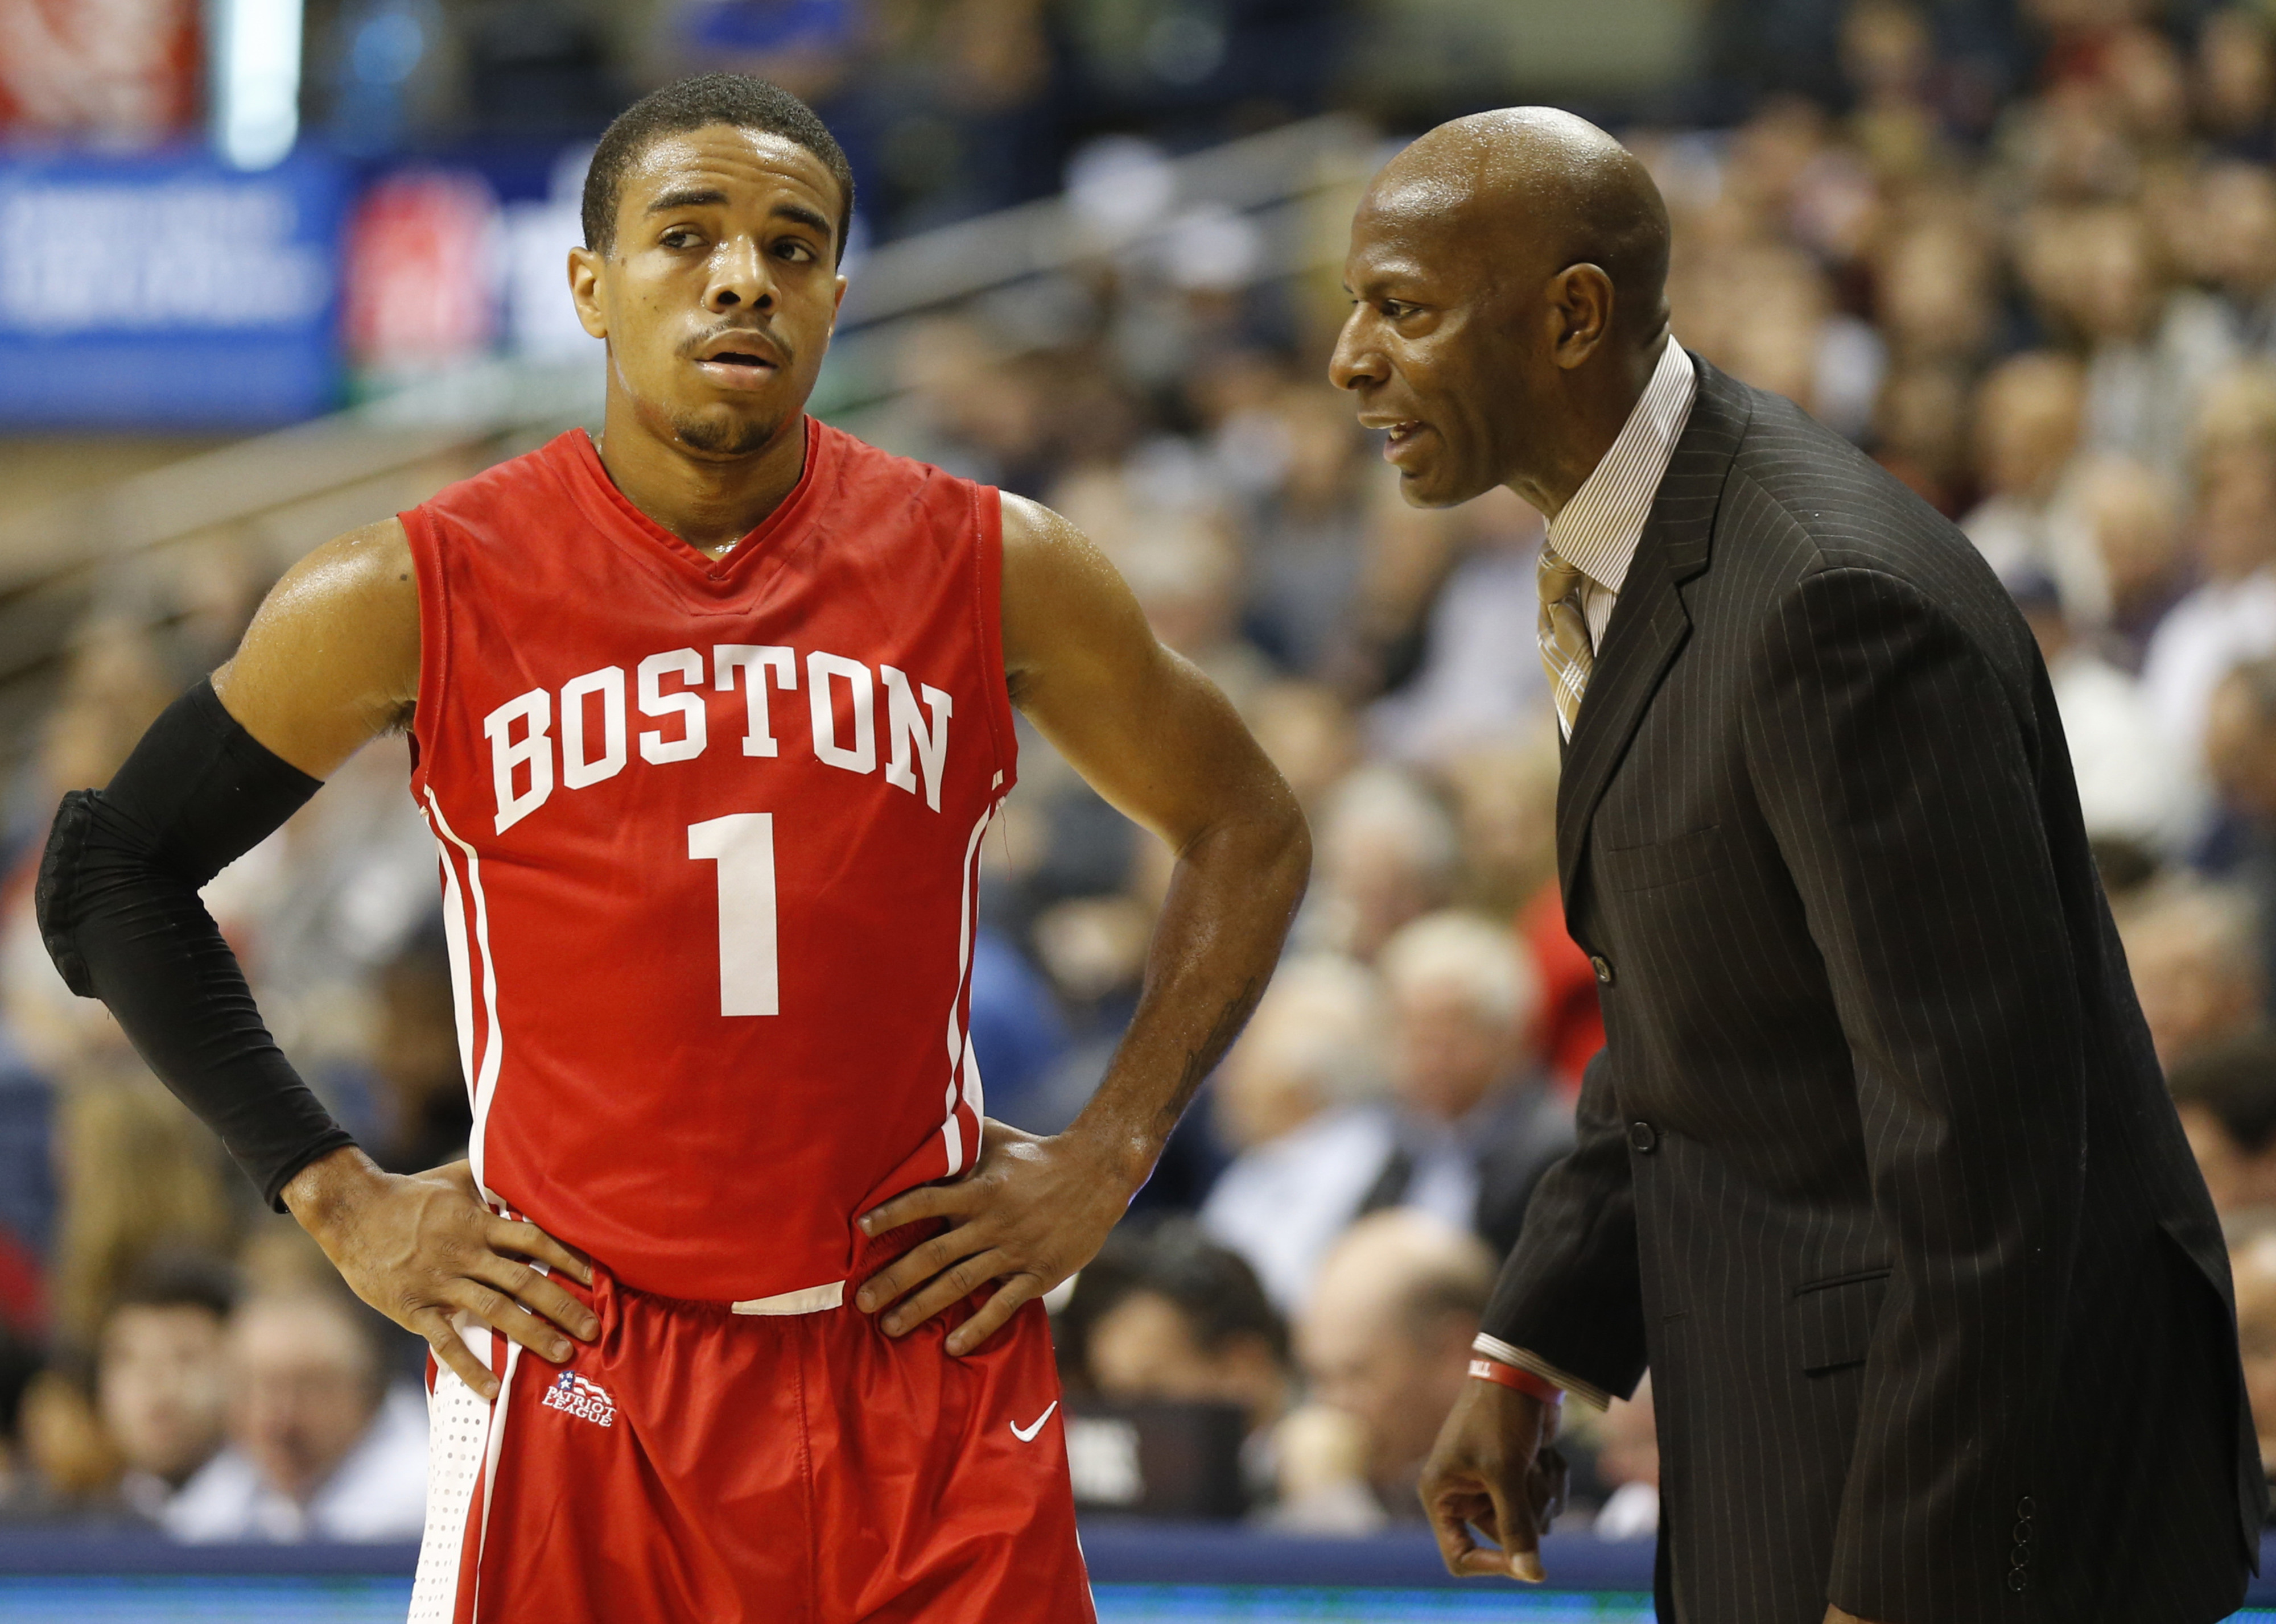 Mo Watson Jr. came to BU to play for Joe Jones, and the marriage has been great for both parties.